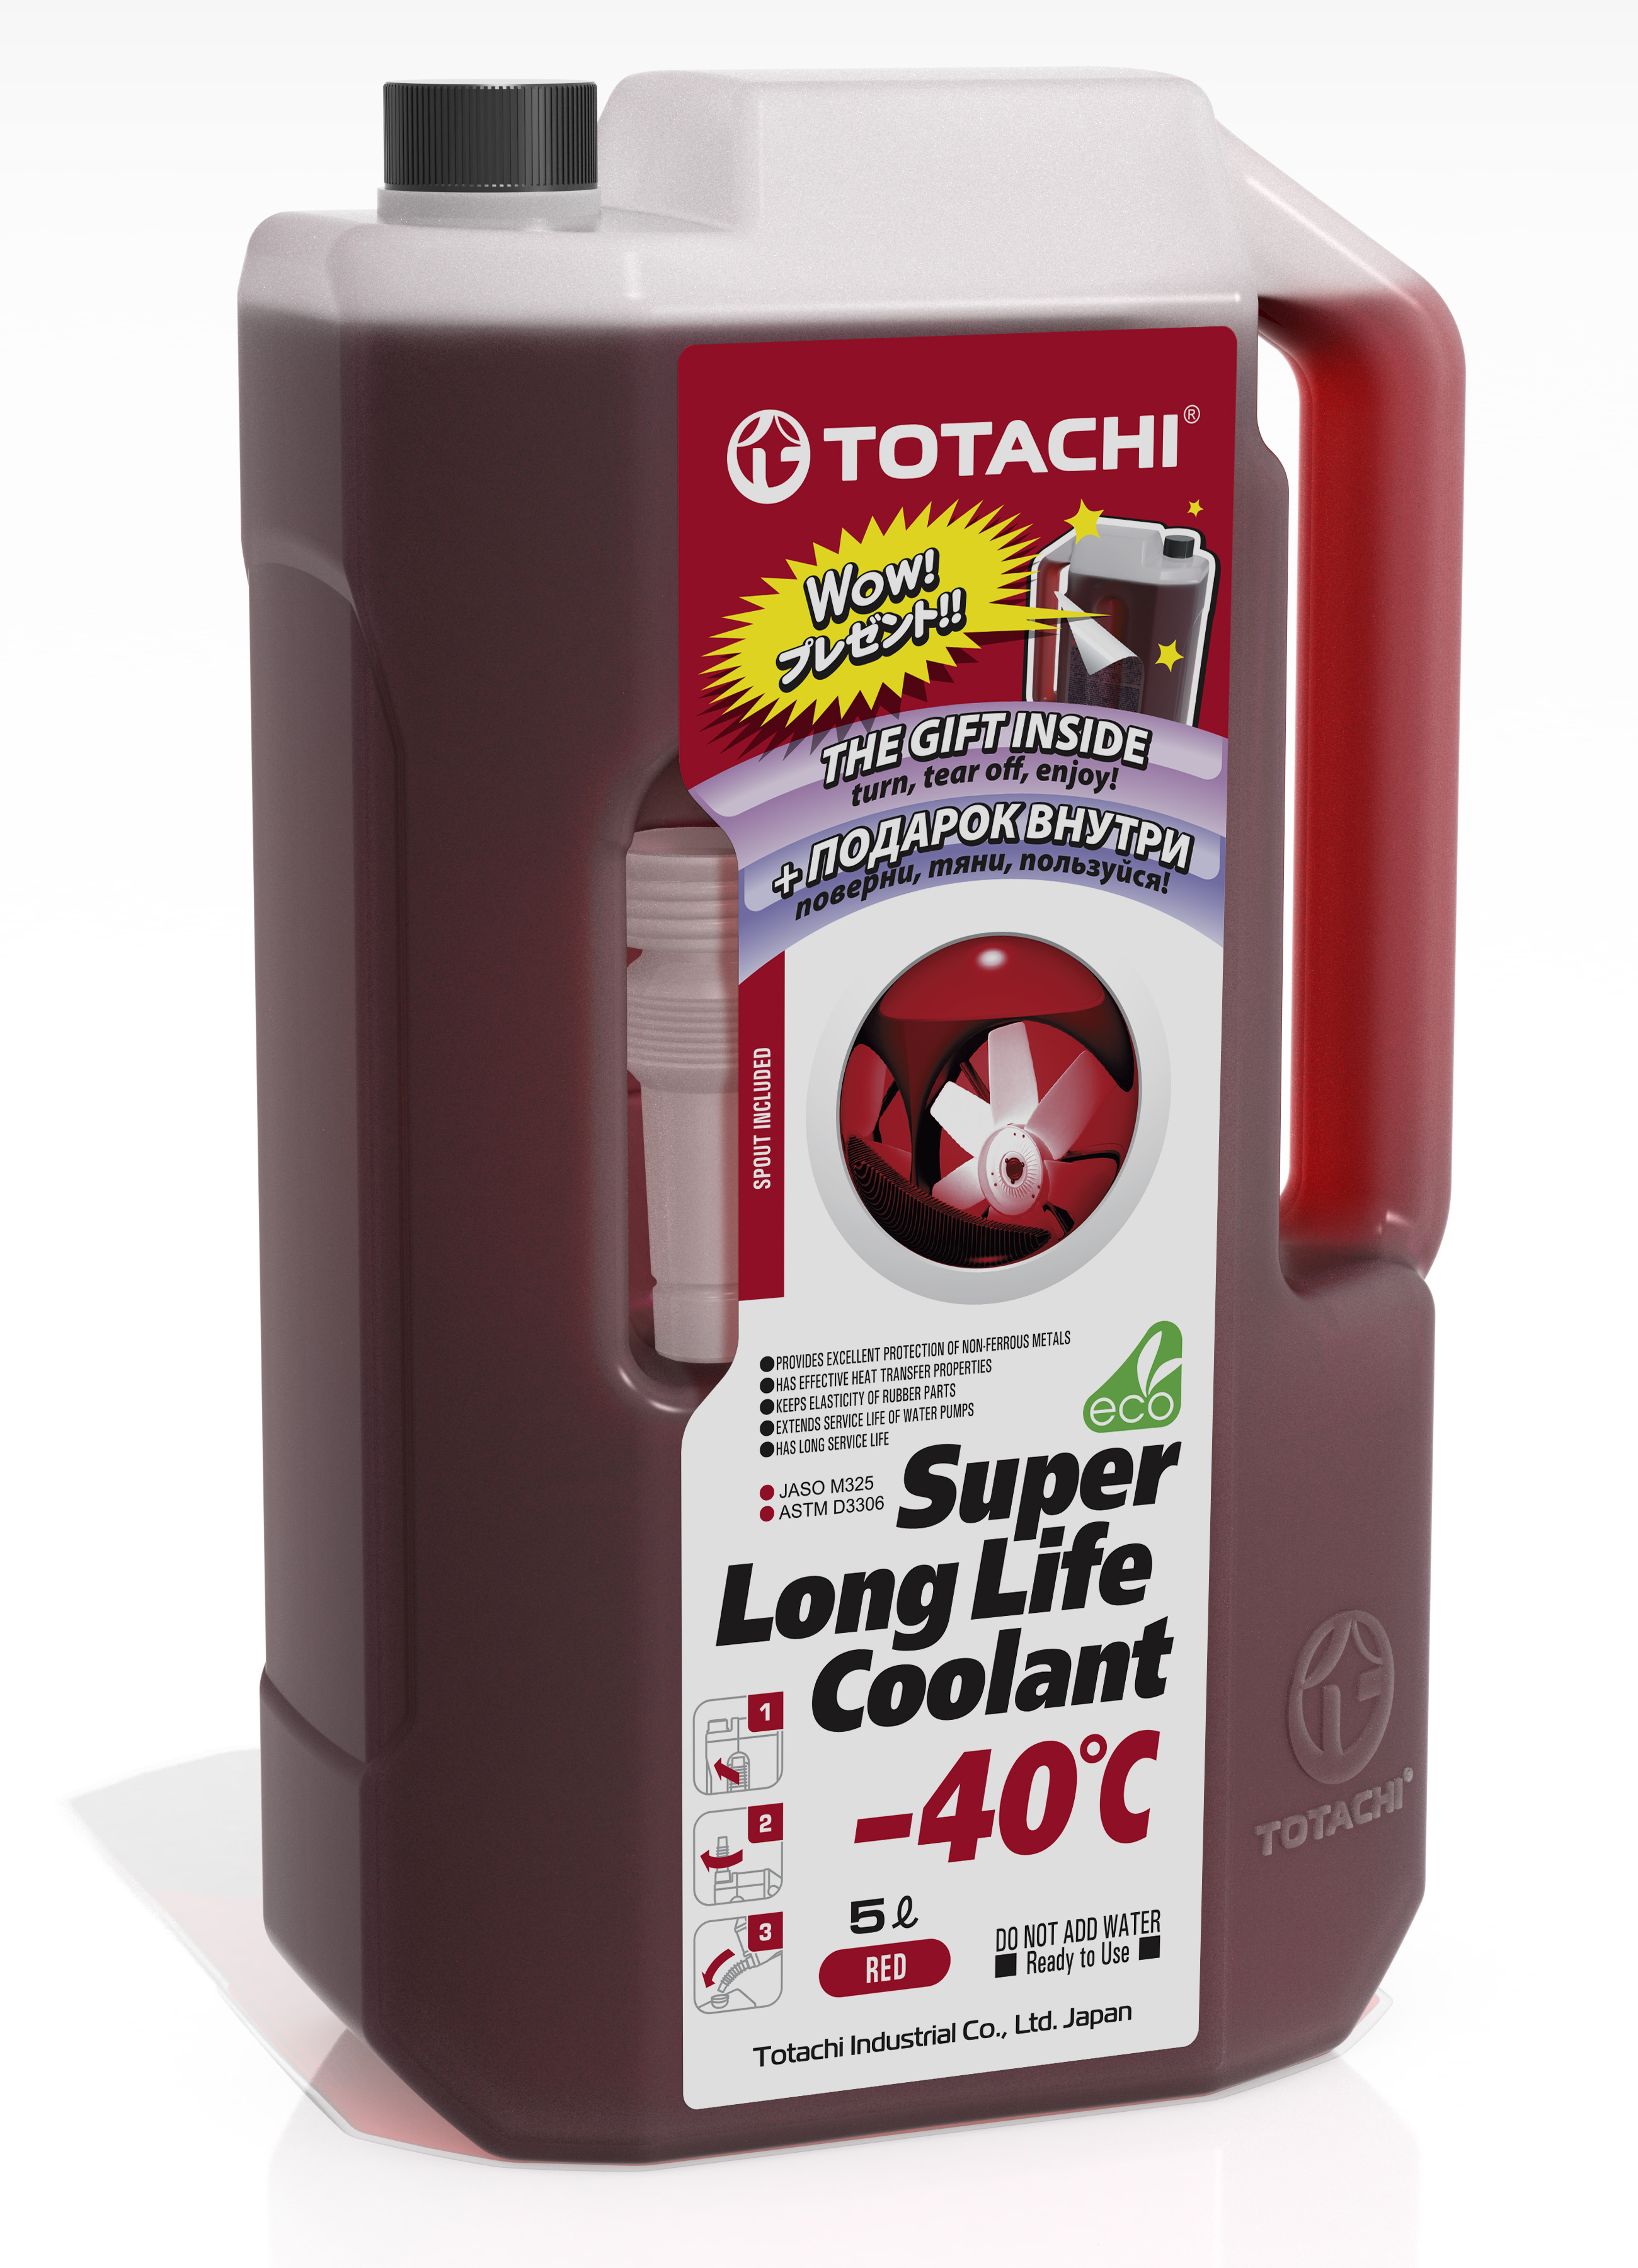 TOTACHI® SUPER LONG LIFE СOOLANT Red -40C